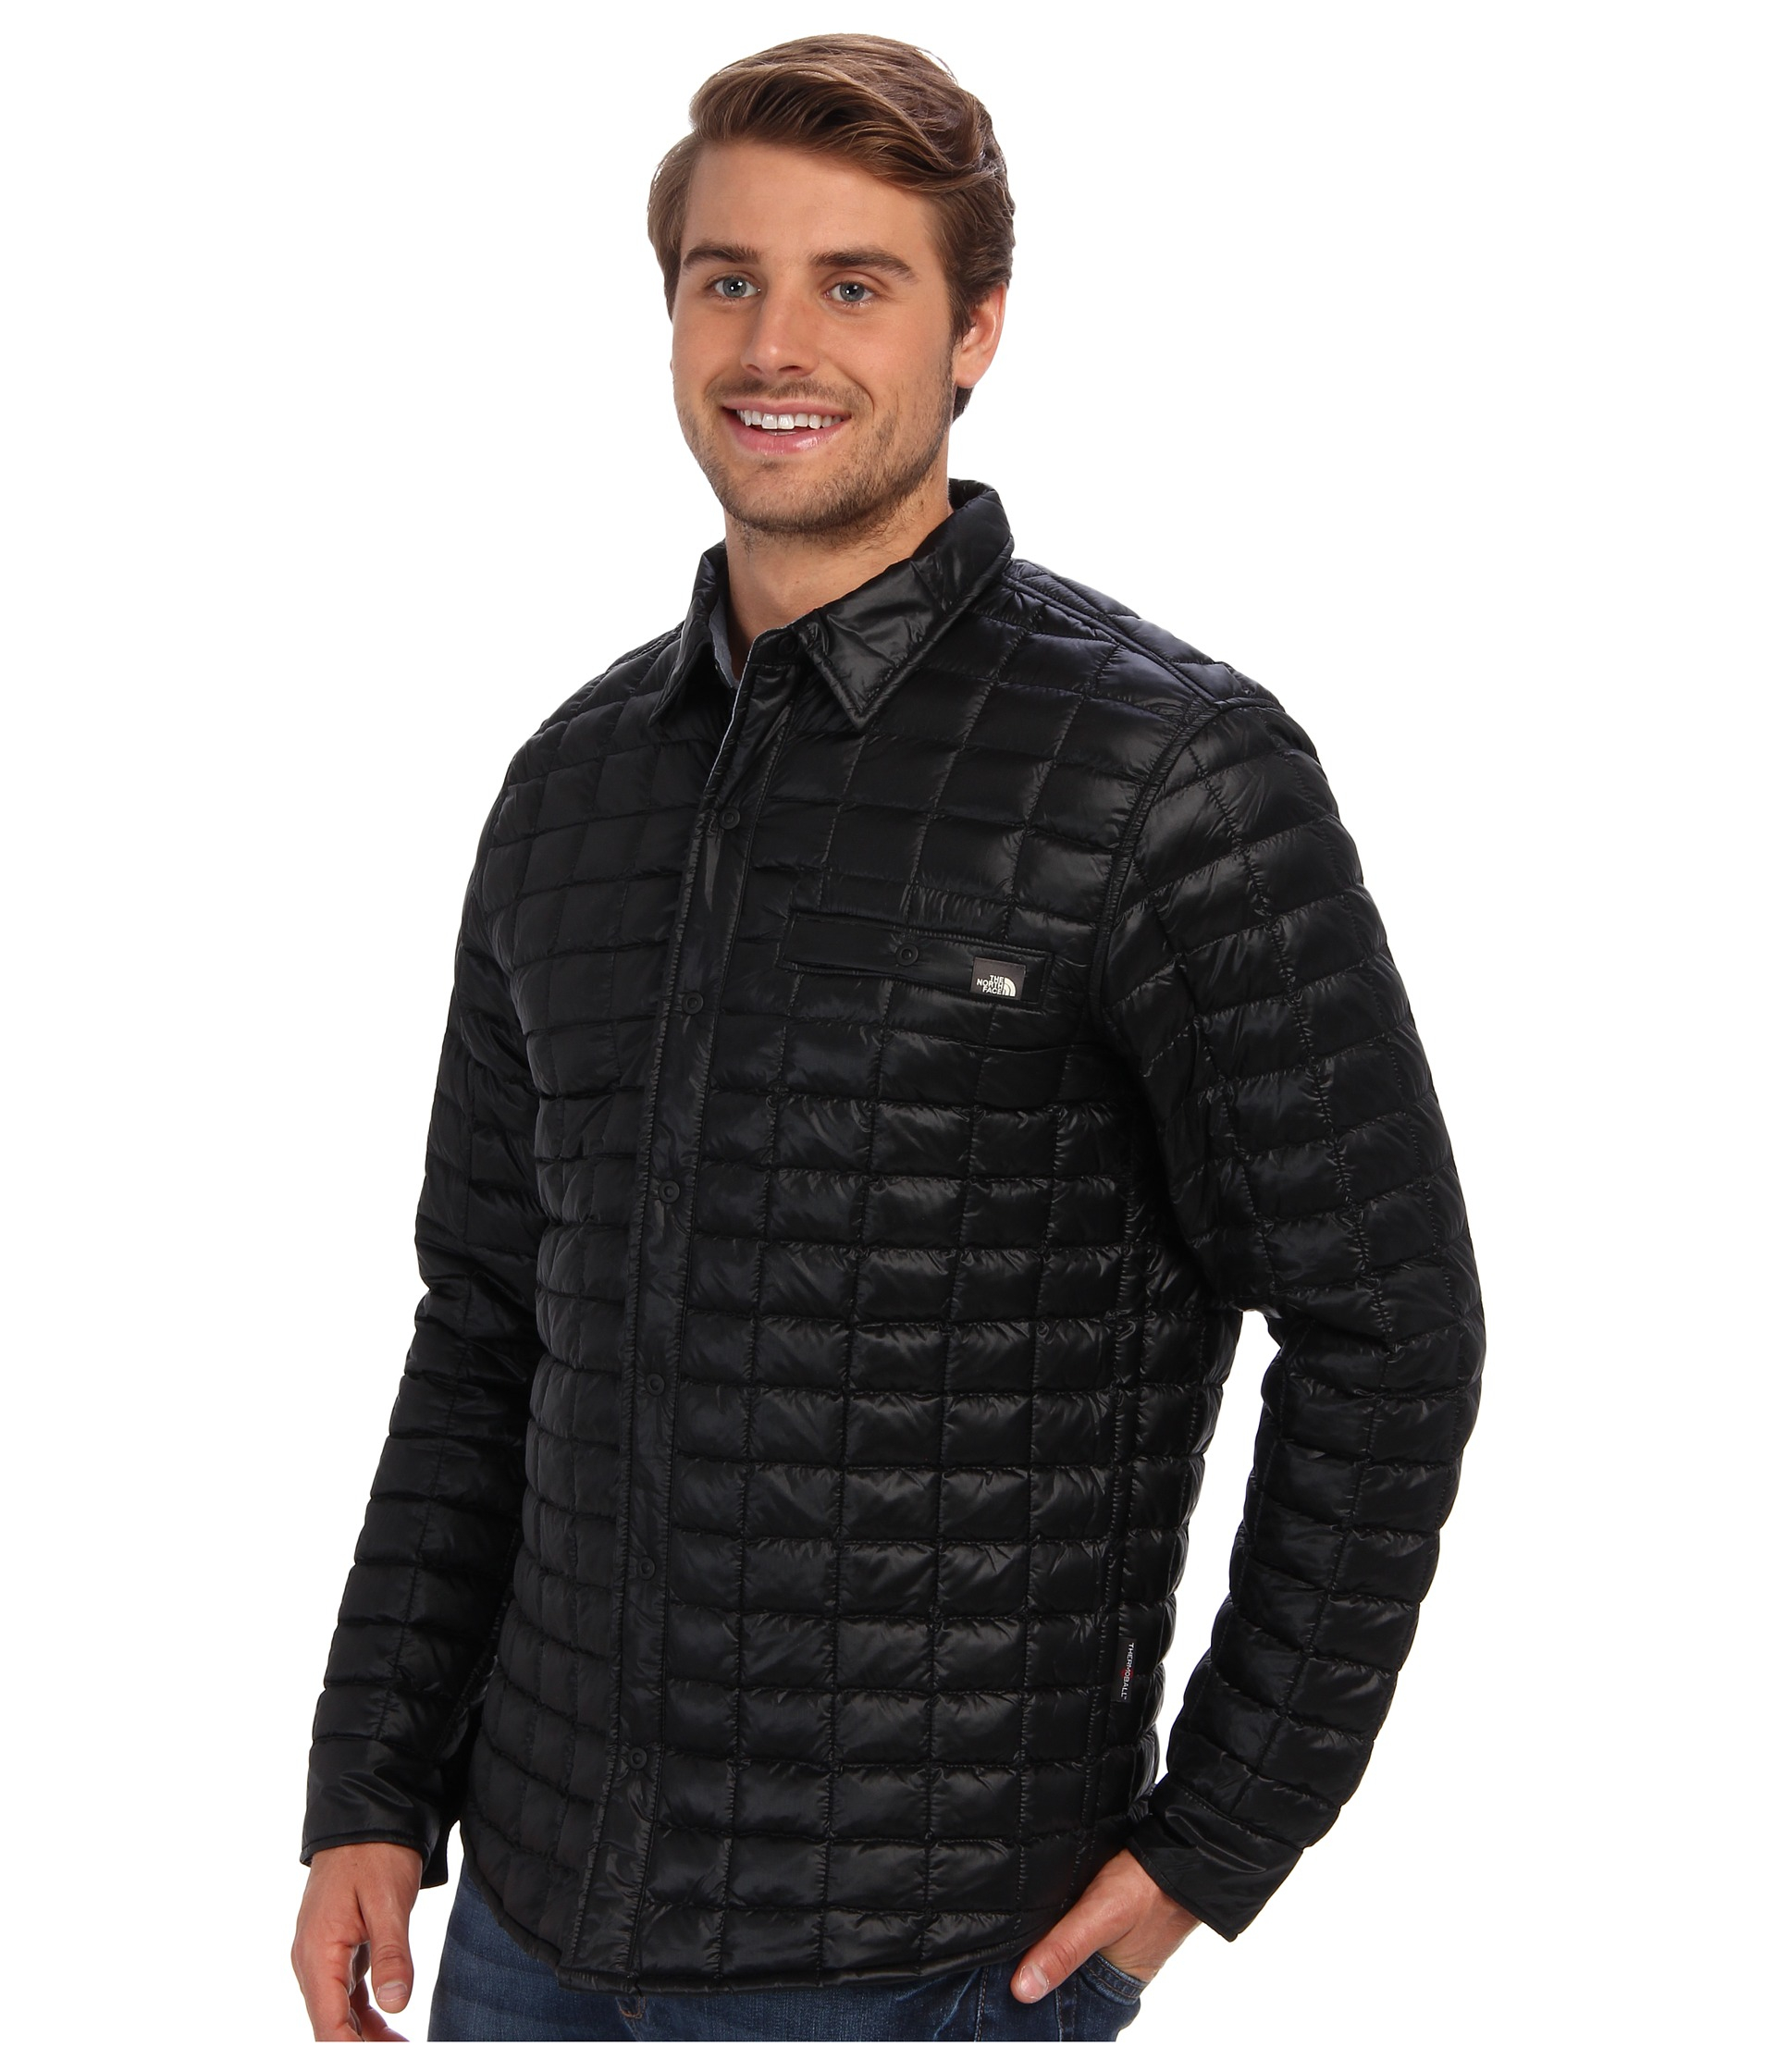 f635d6eaf The North Face Black Reyes Thermoball™ Shirt Jacket for men